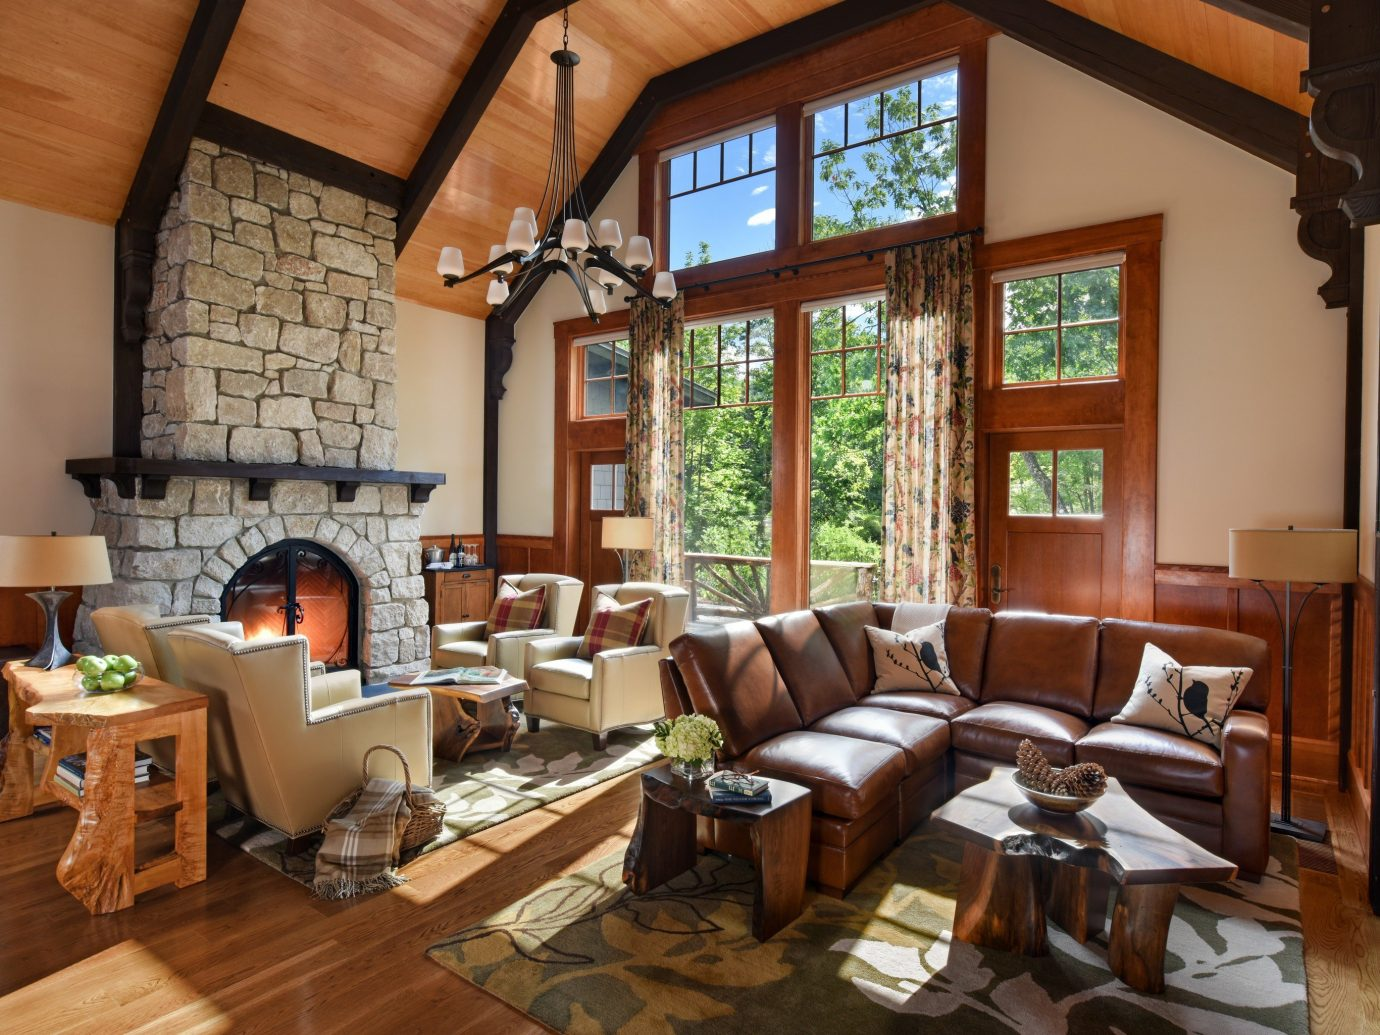 The Most Romantic Hotels in Upstate New York